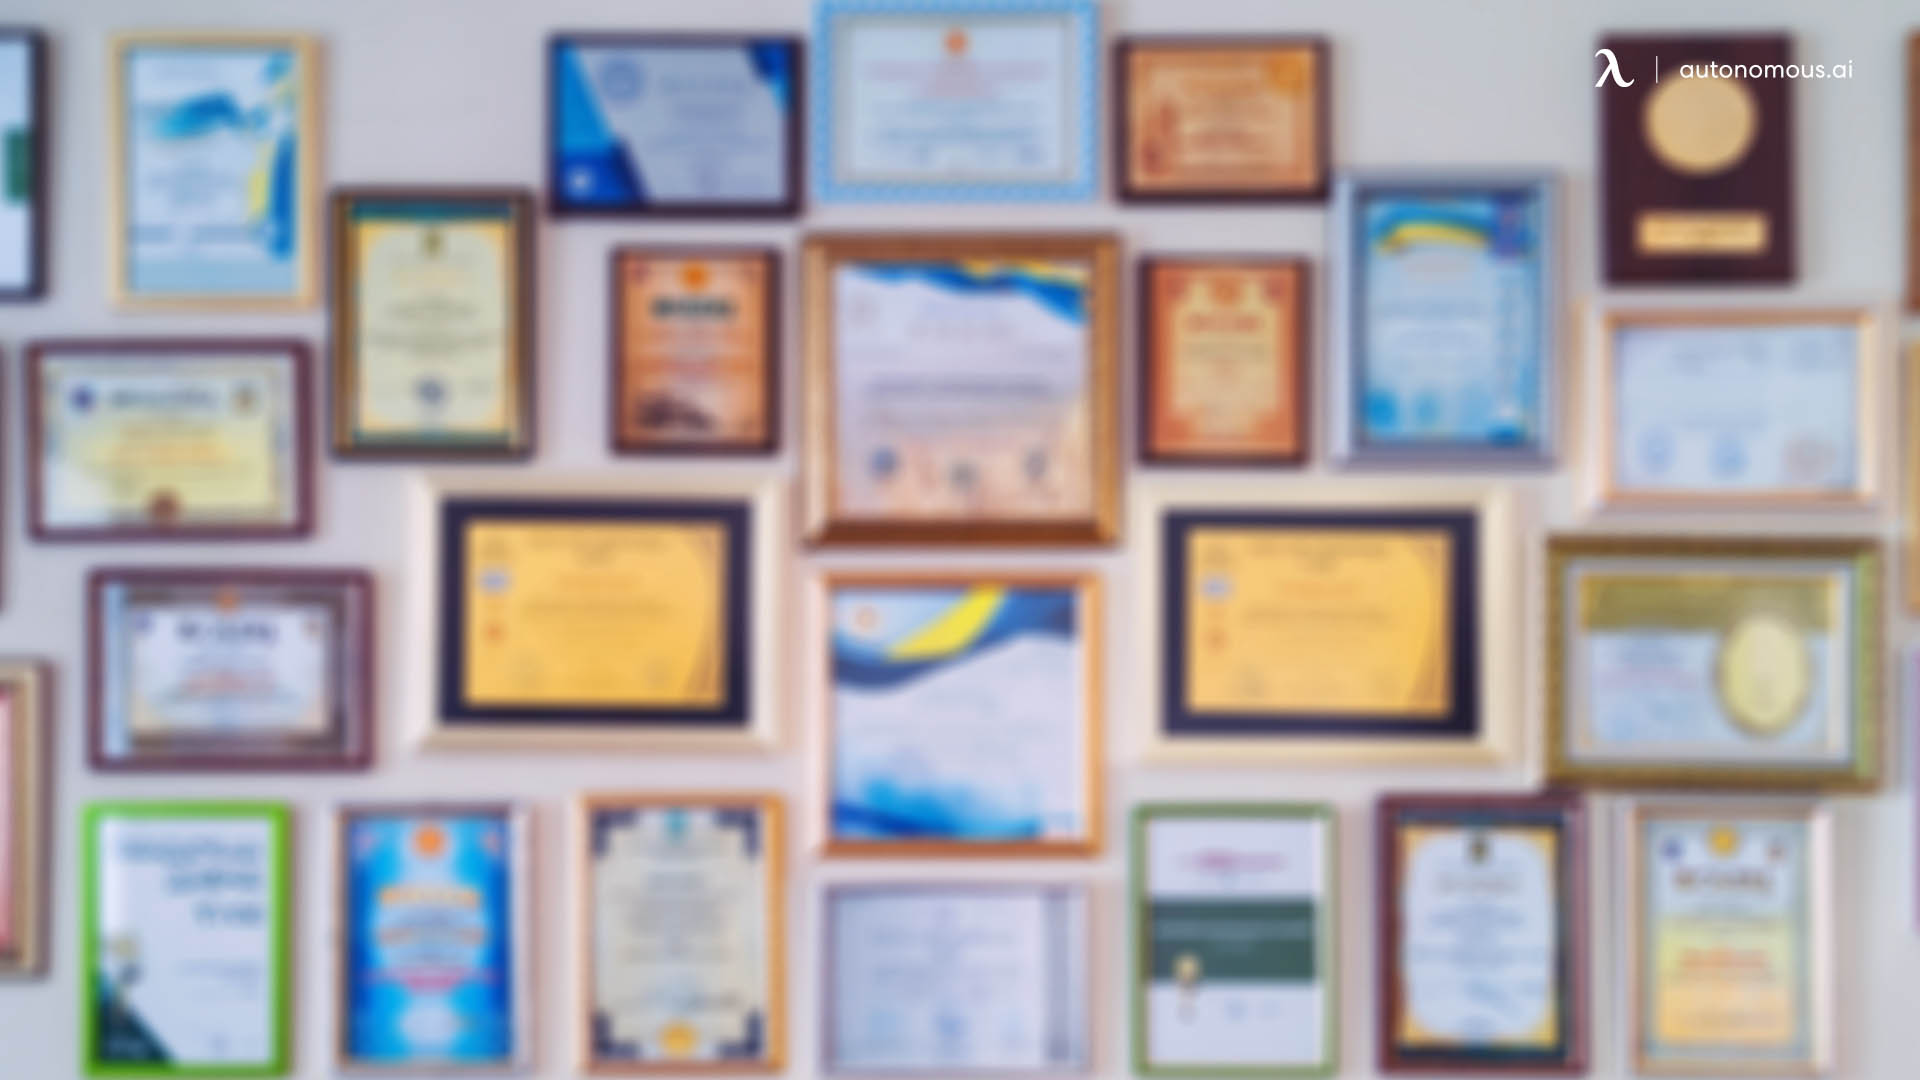 Build (and Add To) a Wall of Fame